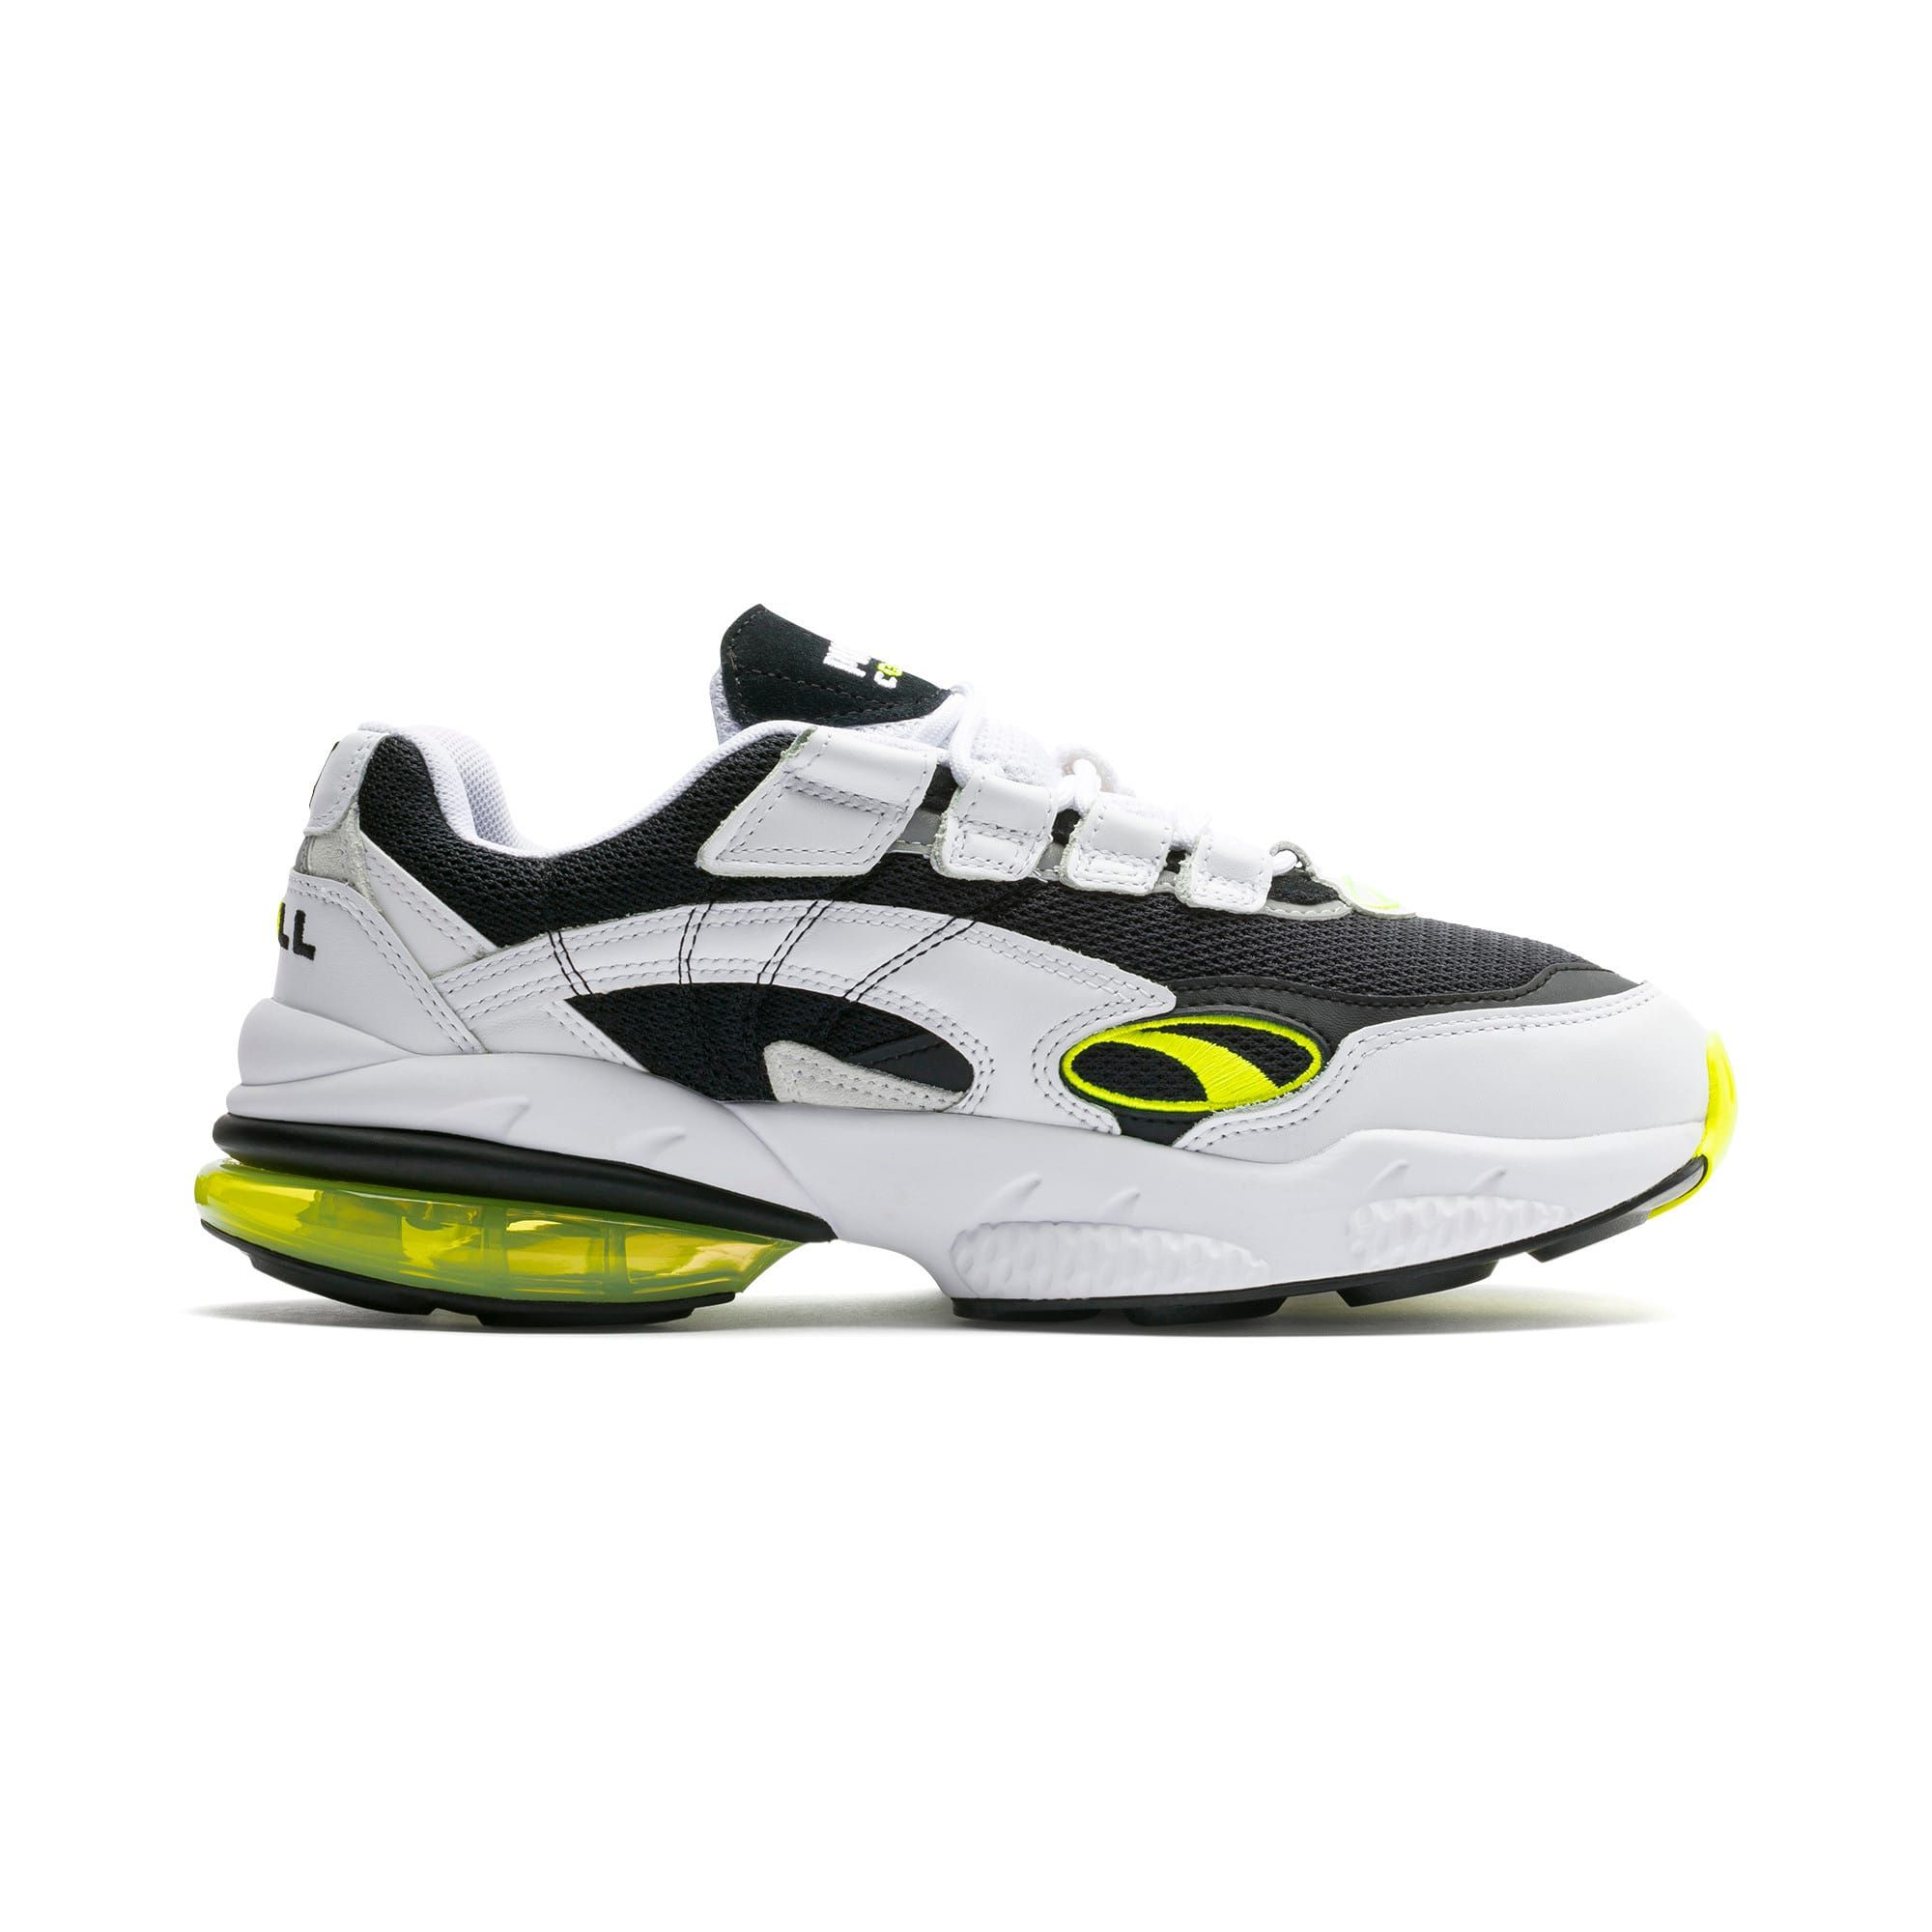 PUMA Cell Venom Hype Trainers in Black/White/Yell Alert size ...